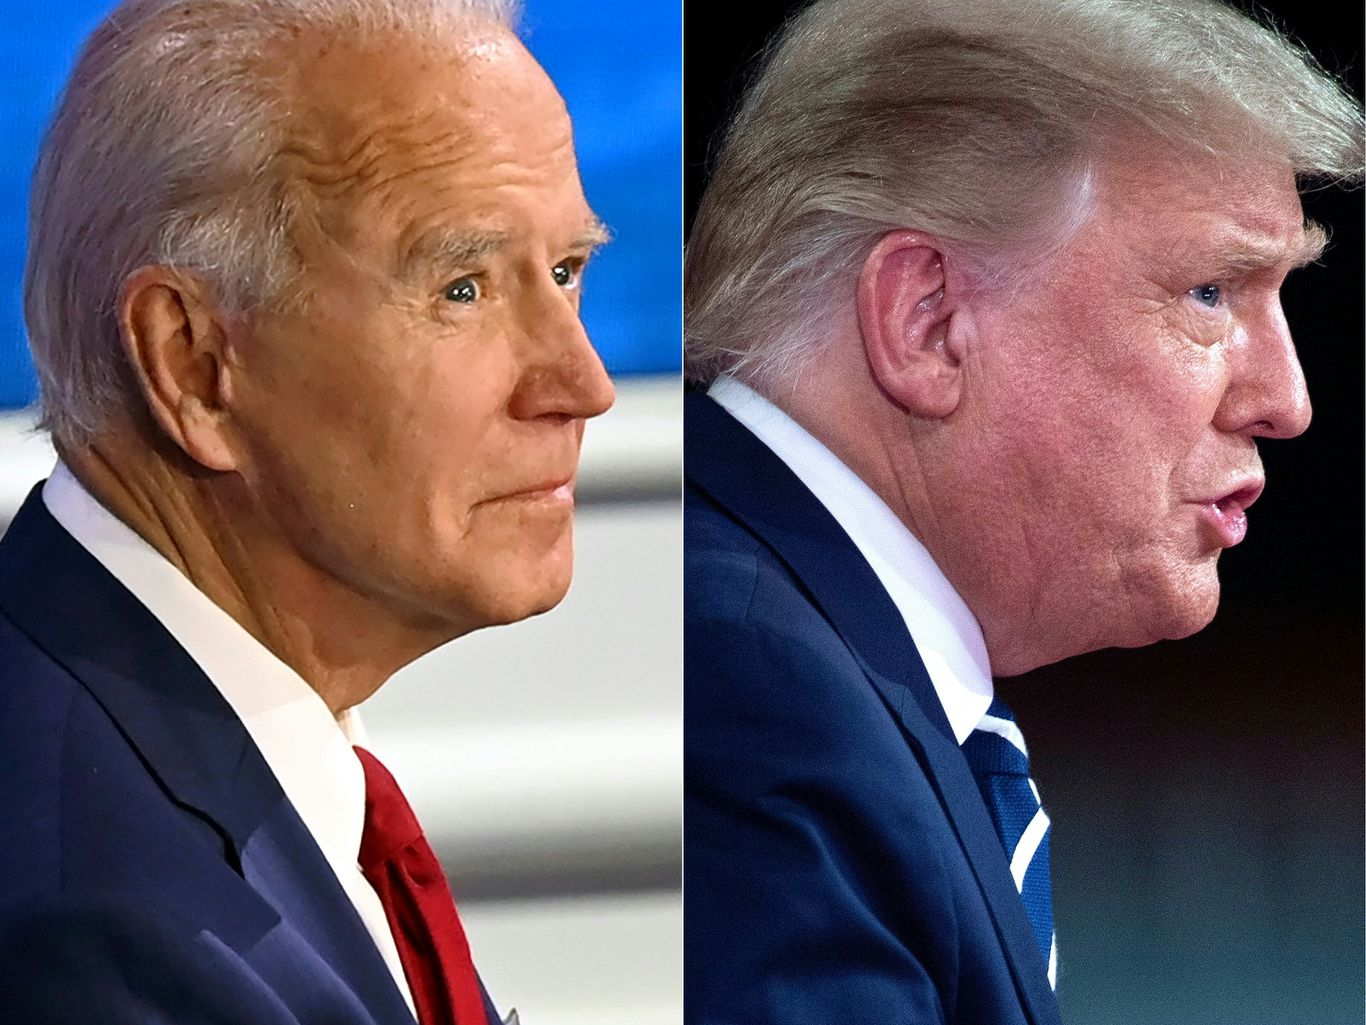 Biden campaign out-raised Trump by over $135 million in September thumbnail